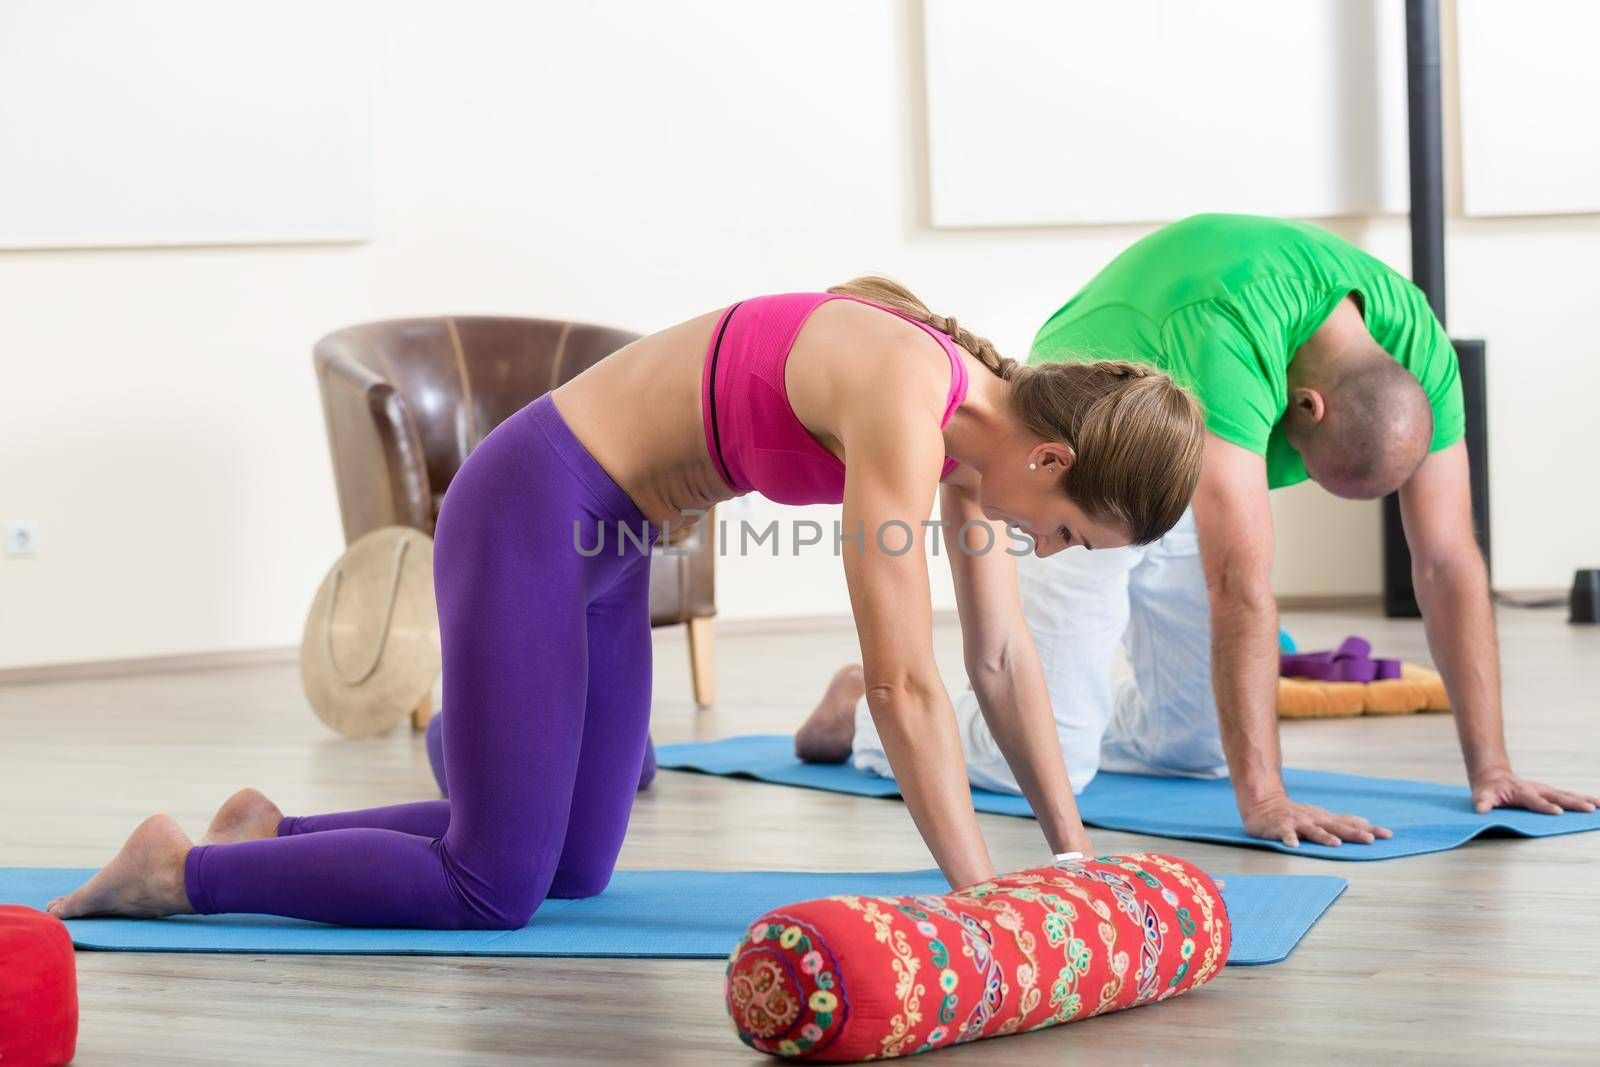 Young couple performing yoga pose on exercise mat in yoga class